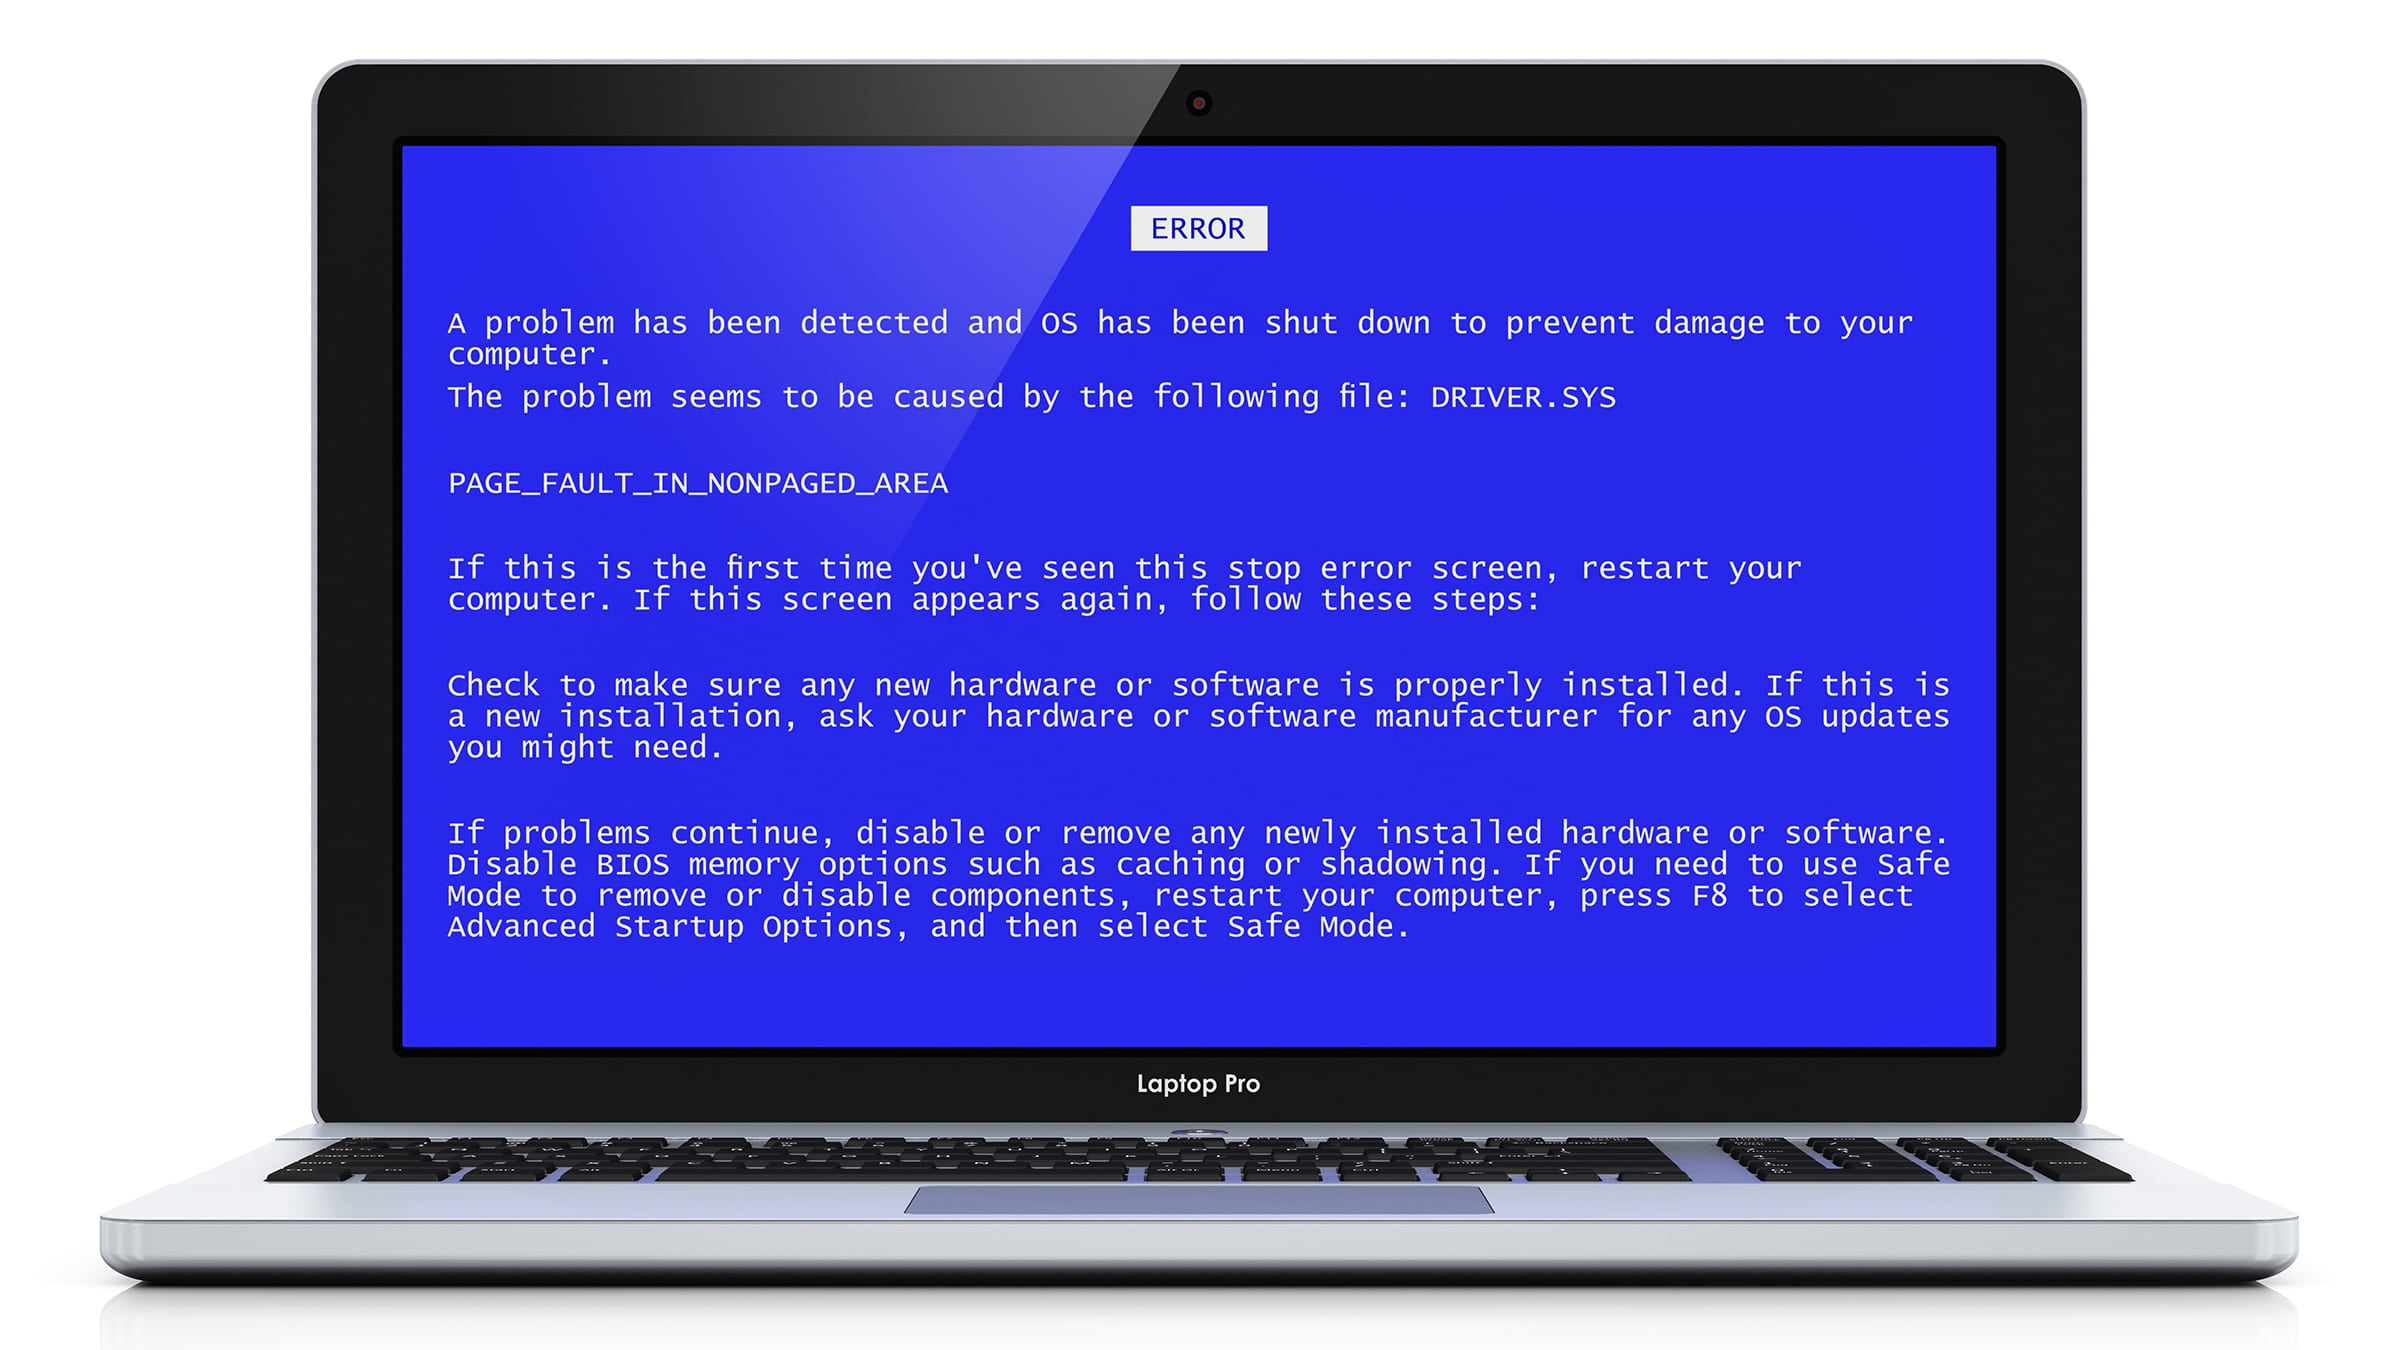 I Got a Blue Screen Error, What Should I Do? - Ask Leo!